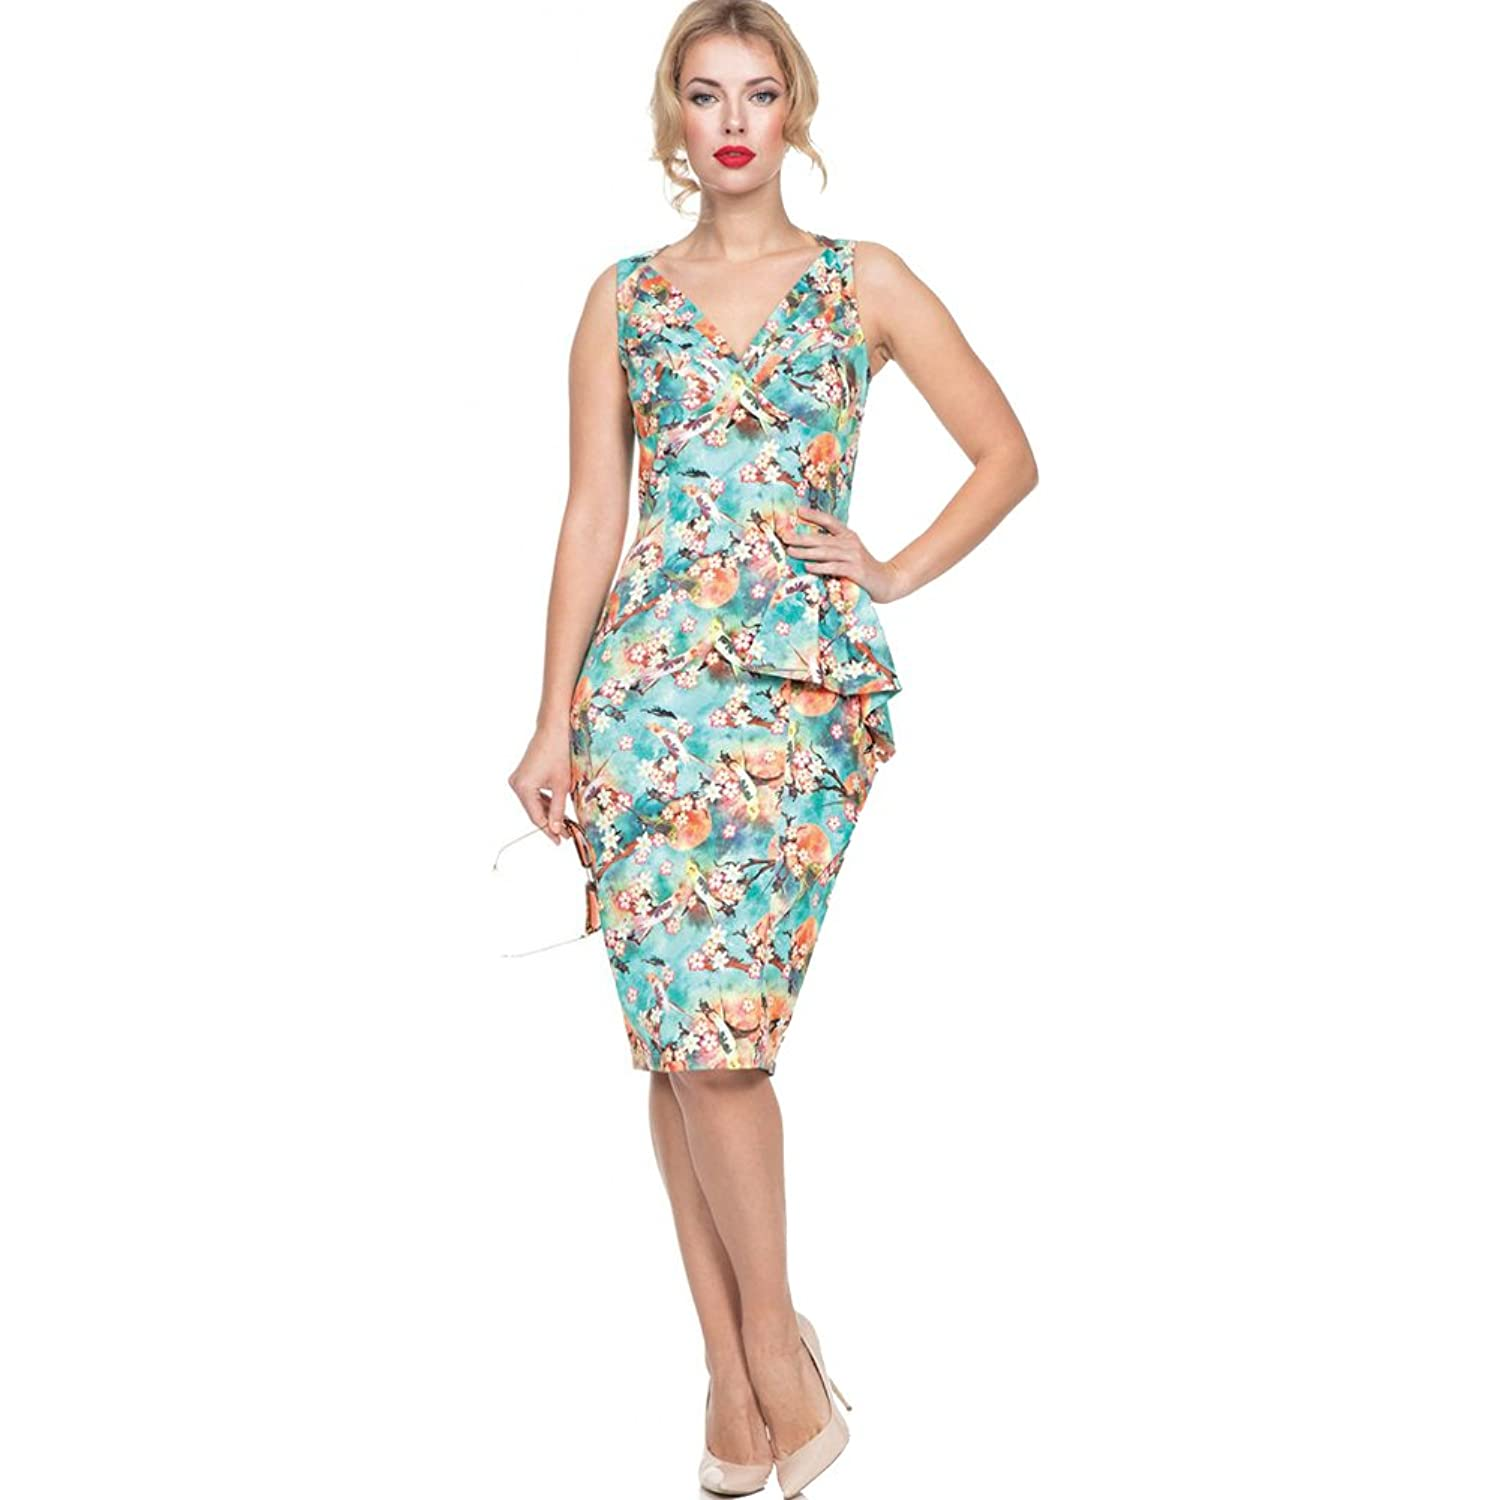 Wiggle Dresses | Pencil Dresses Voodoo Vixen JESSA Tropical Bird Print Pencil Dress Green $57.99 AT vintagedancer.com